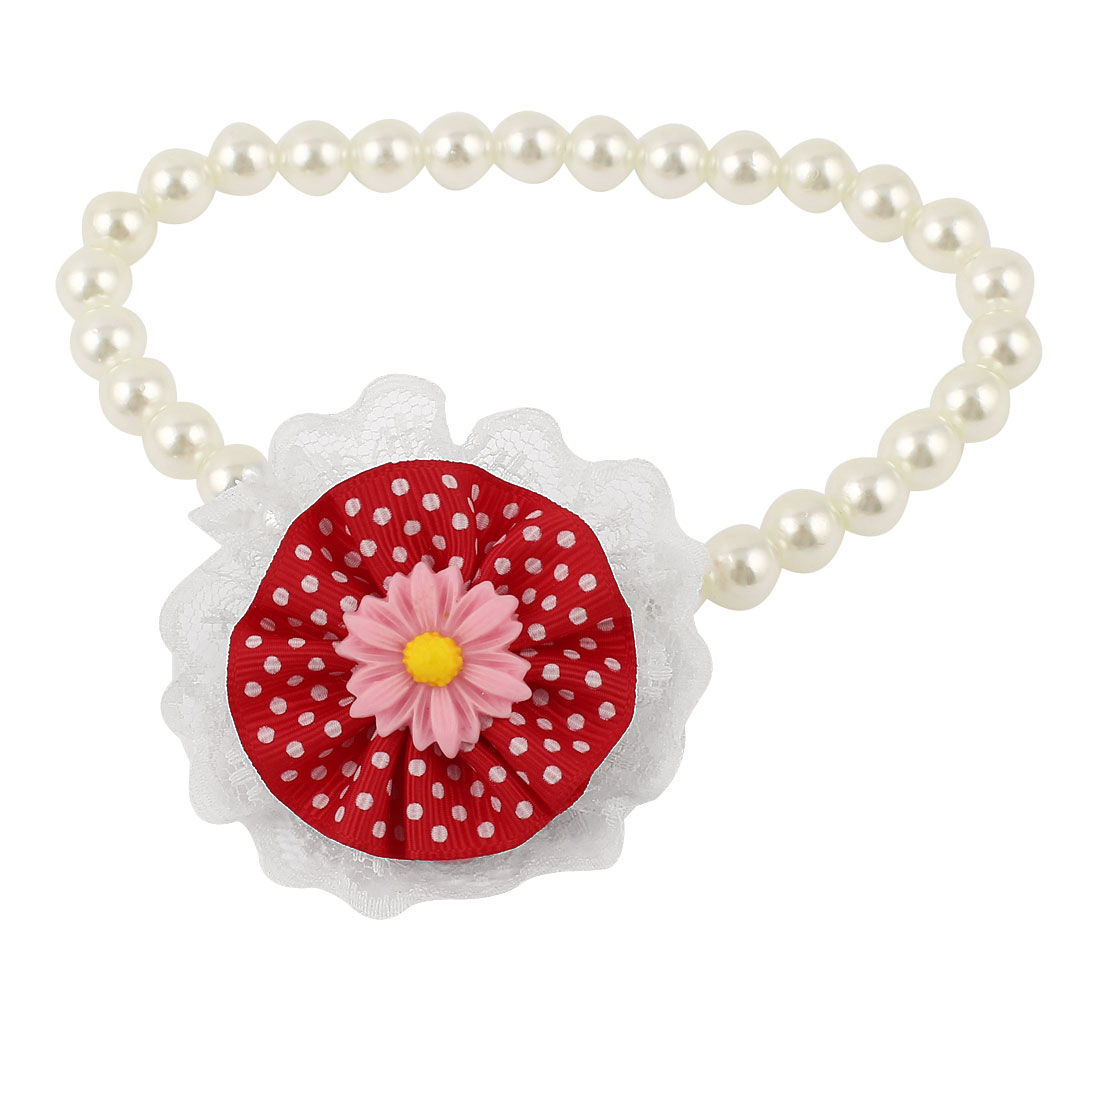 Lace Red Flower Accent Pet Dog Plastic Beads Pearls Collar Necklace White M